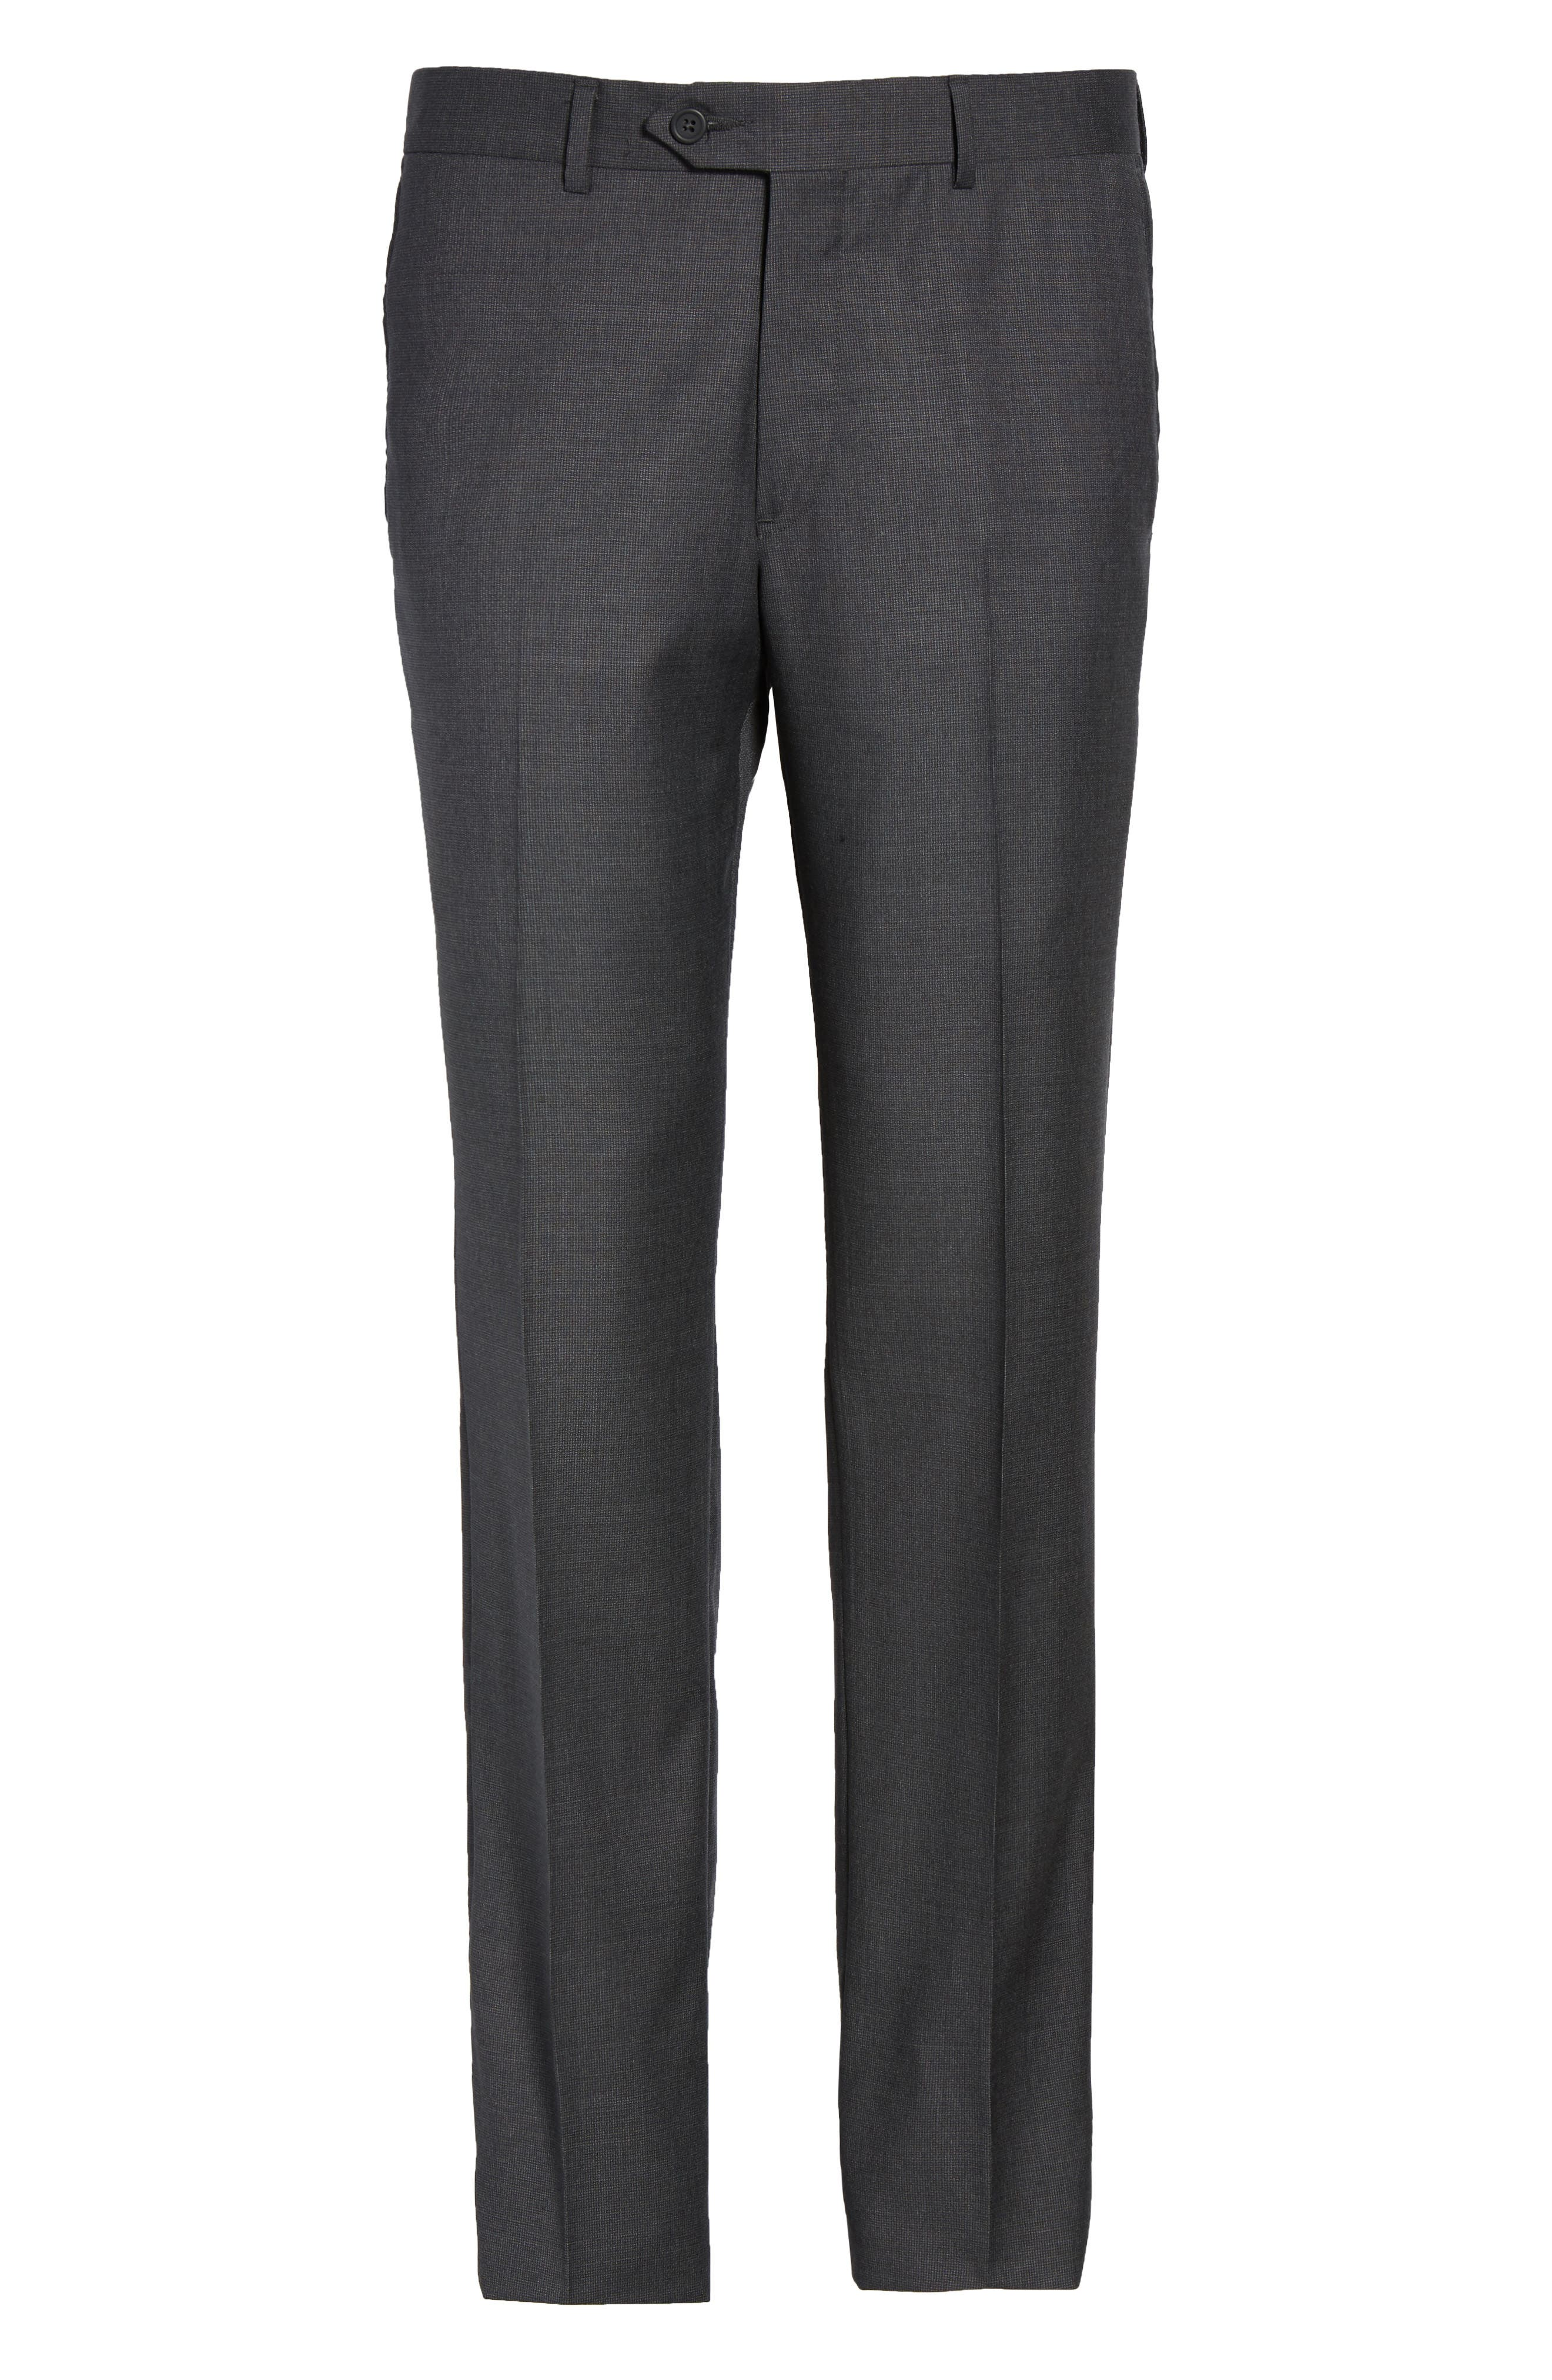 Flat Front Solid Wool Suit Trousers,                             Alternate thumbnail 6, color,                             099